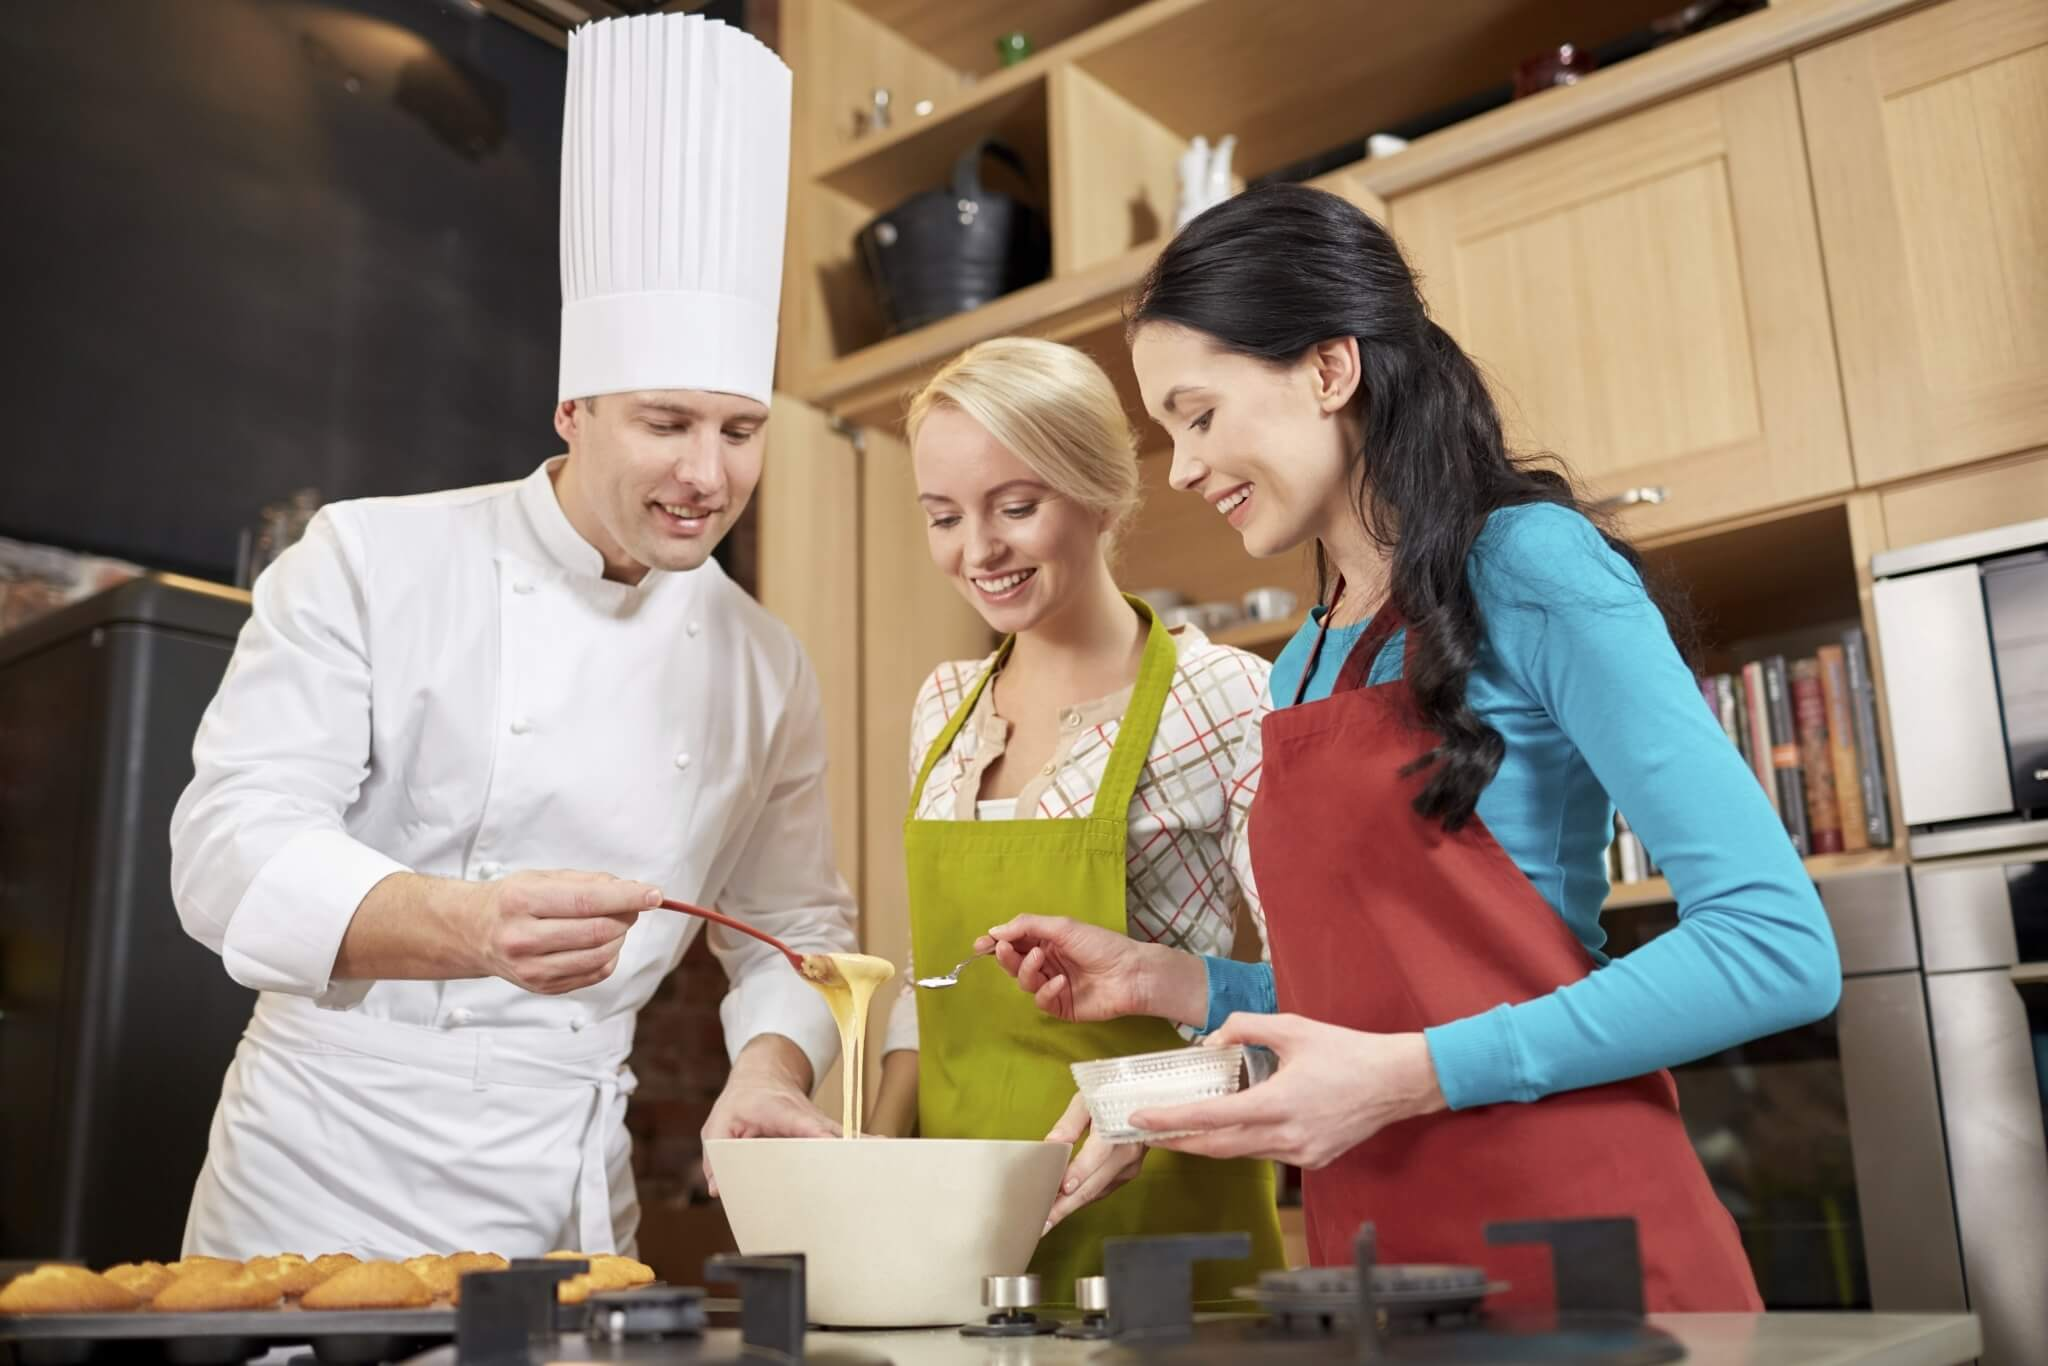 happy-women-and-chef-cook-baking-in-kitchen-000070772171_Full.jpg.jpeg